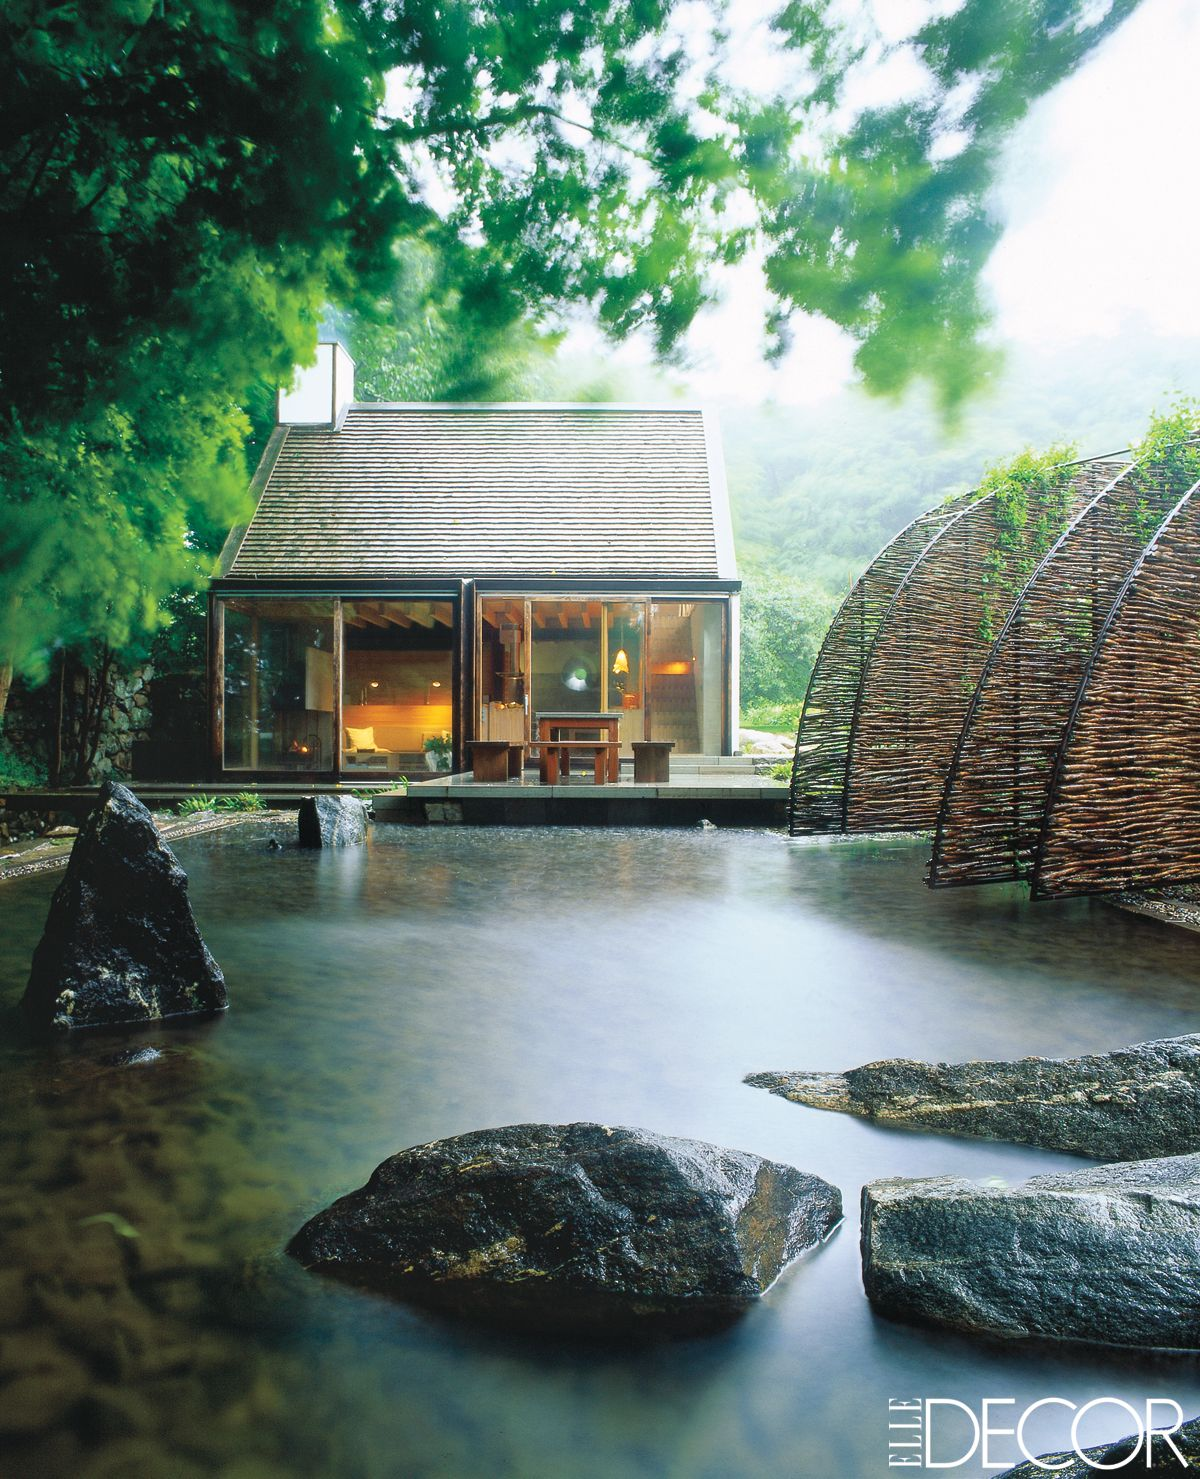 ZEN MASTERY: Home of tranquility in Sweden